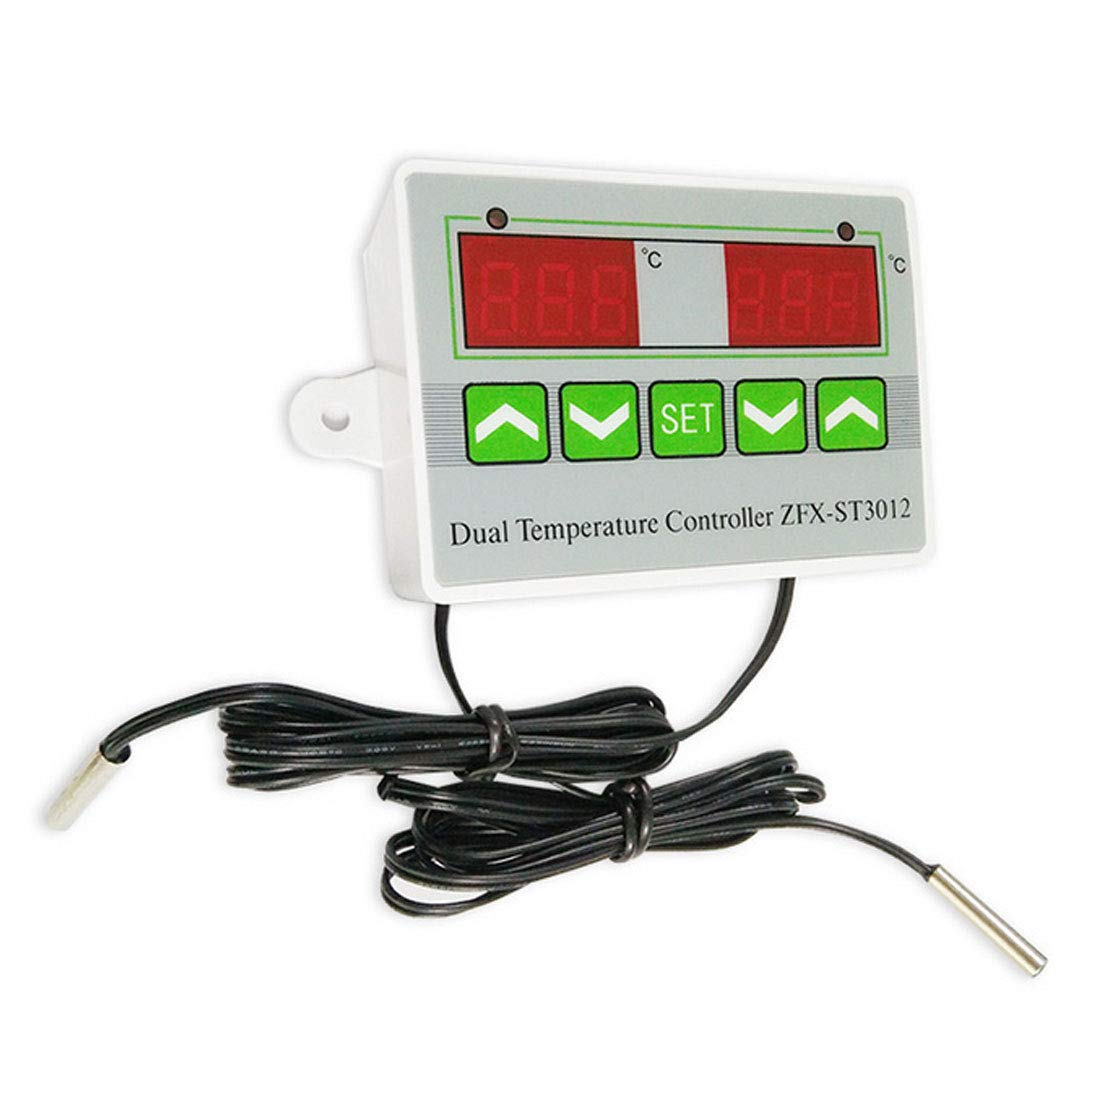 1PCS Digital LED Dual Thermometer Temperature Controller Thermostat Incubator Control Microcomputer Dual Probe AC 24V